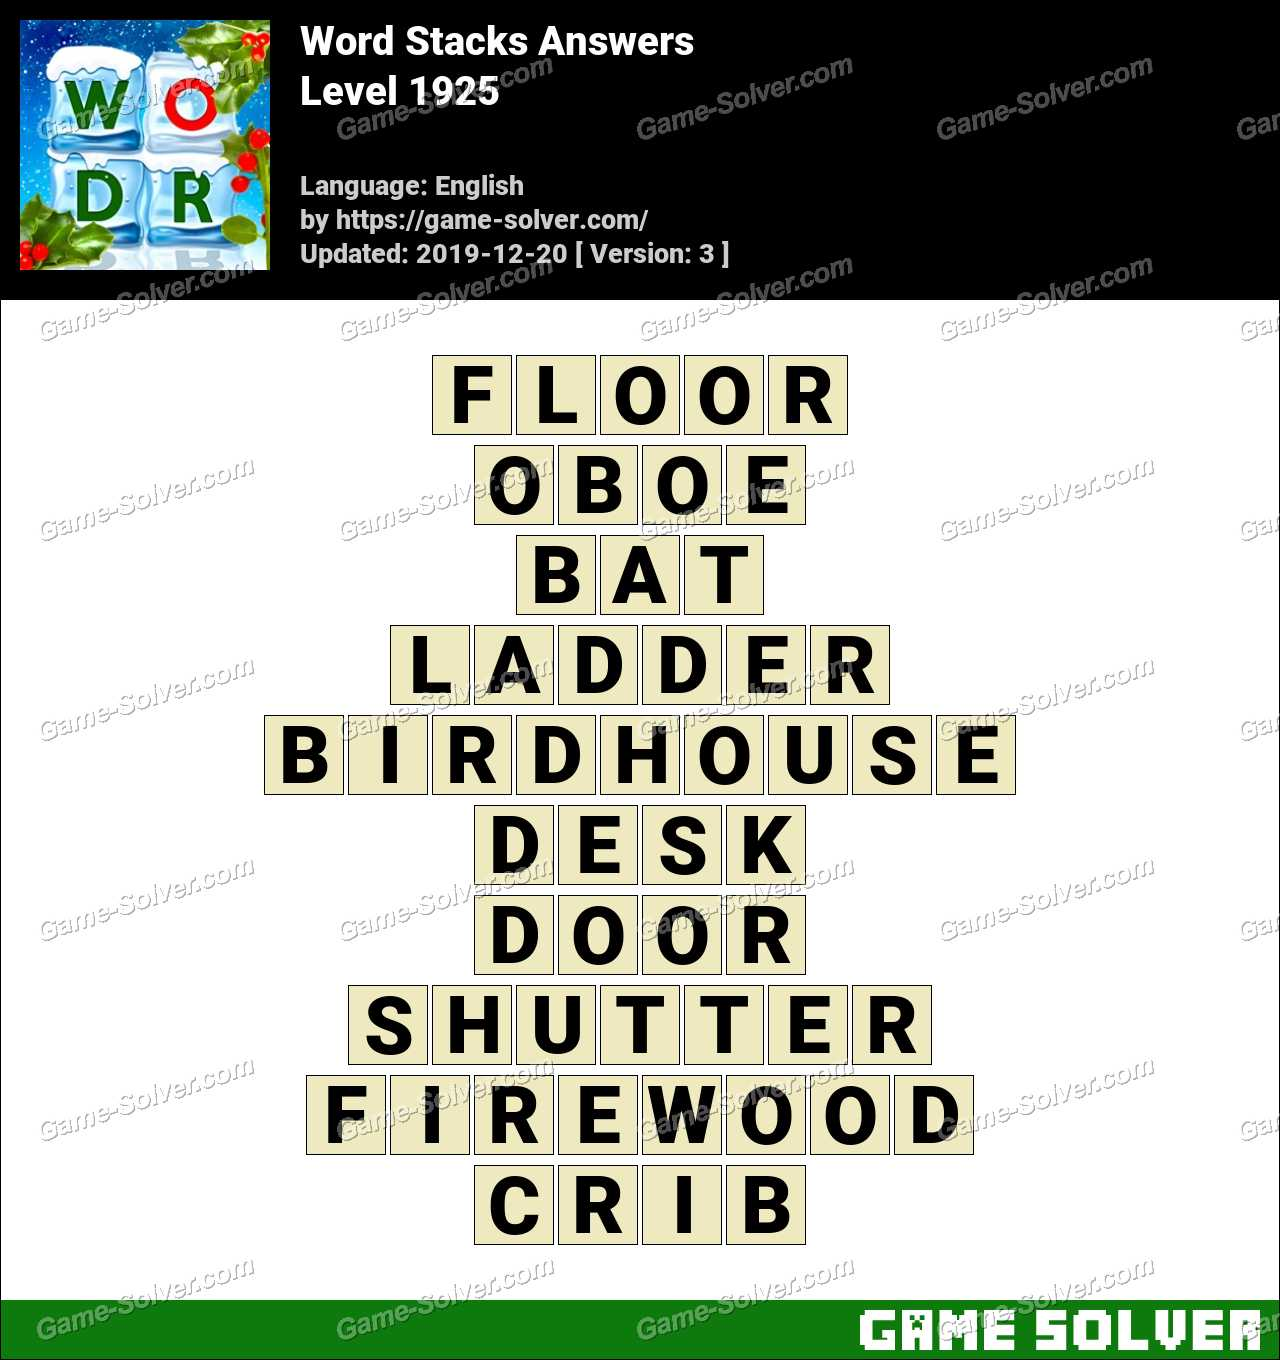 Word Stacks Level 1925 Answers